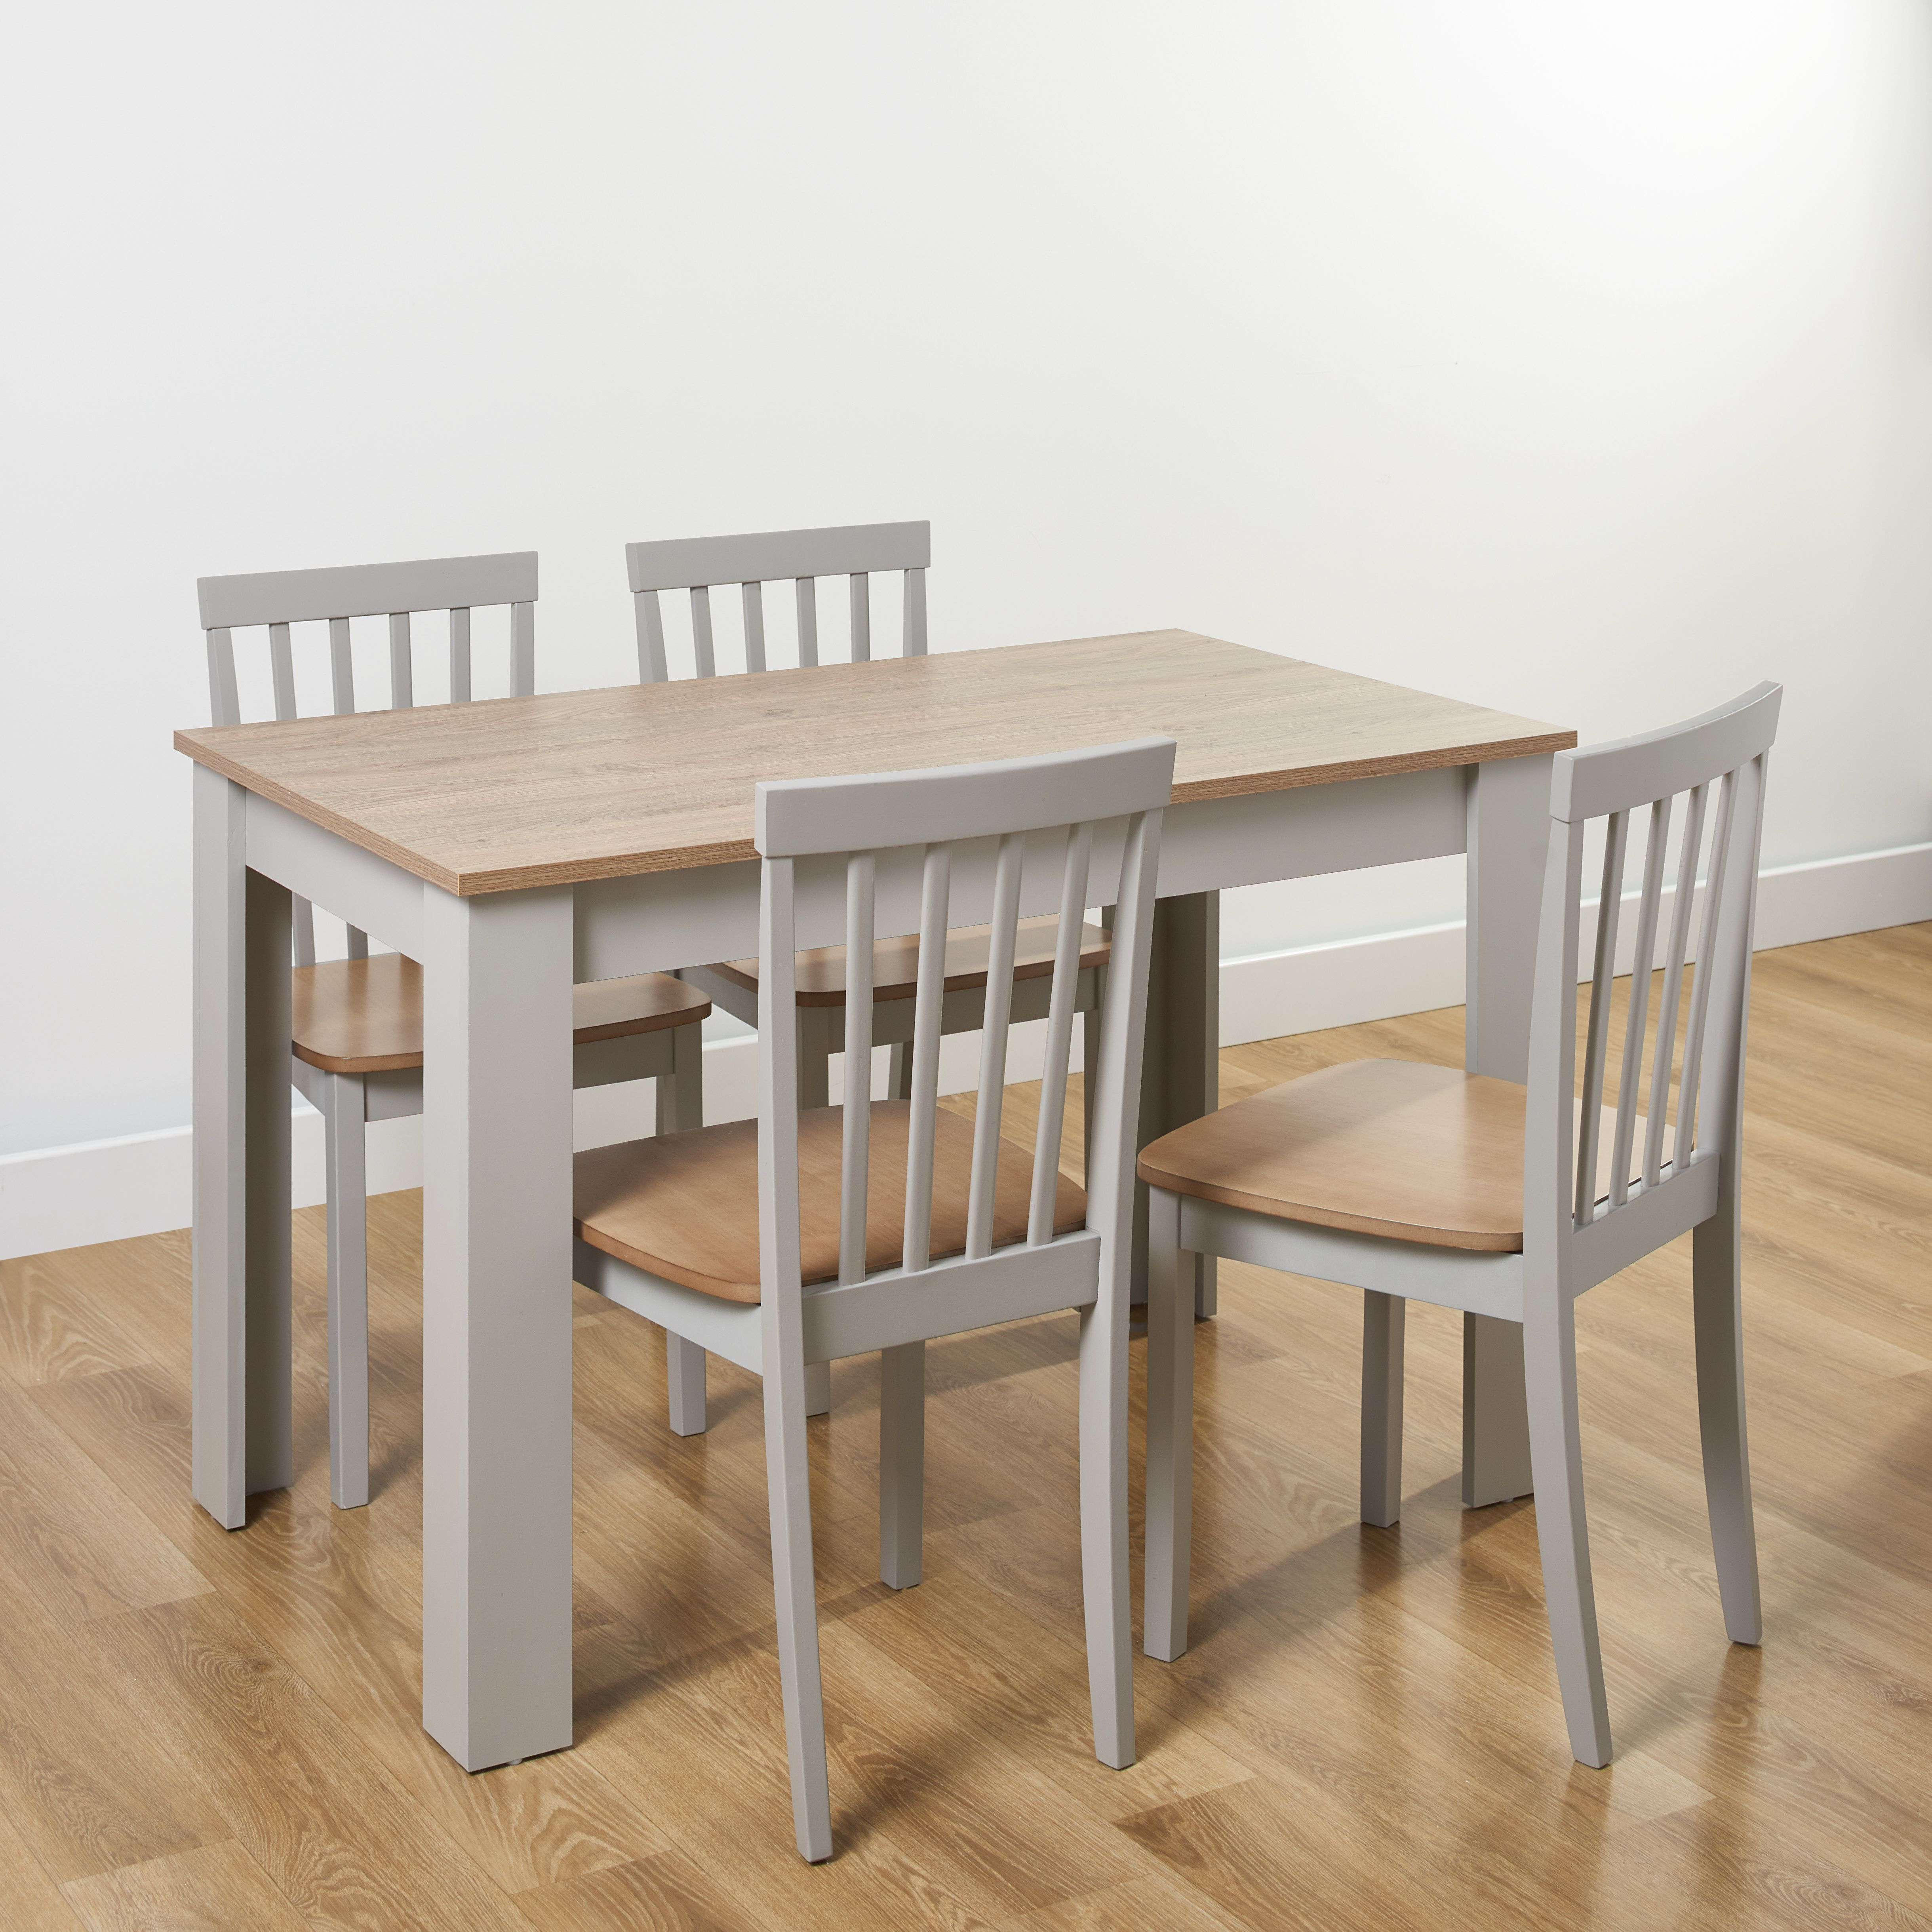 Lexington Table With Four Chairs In 2020 Dining Furniture Dining Room Furniture Table